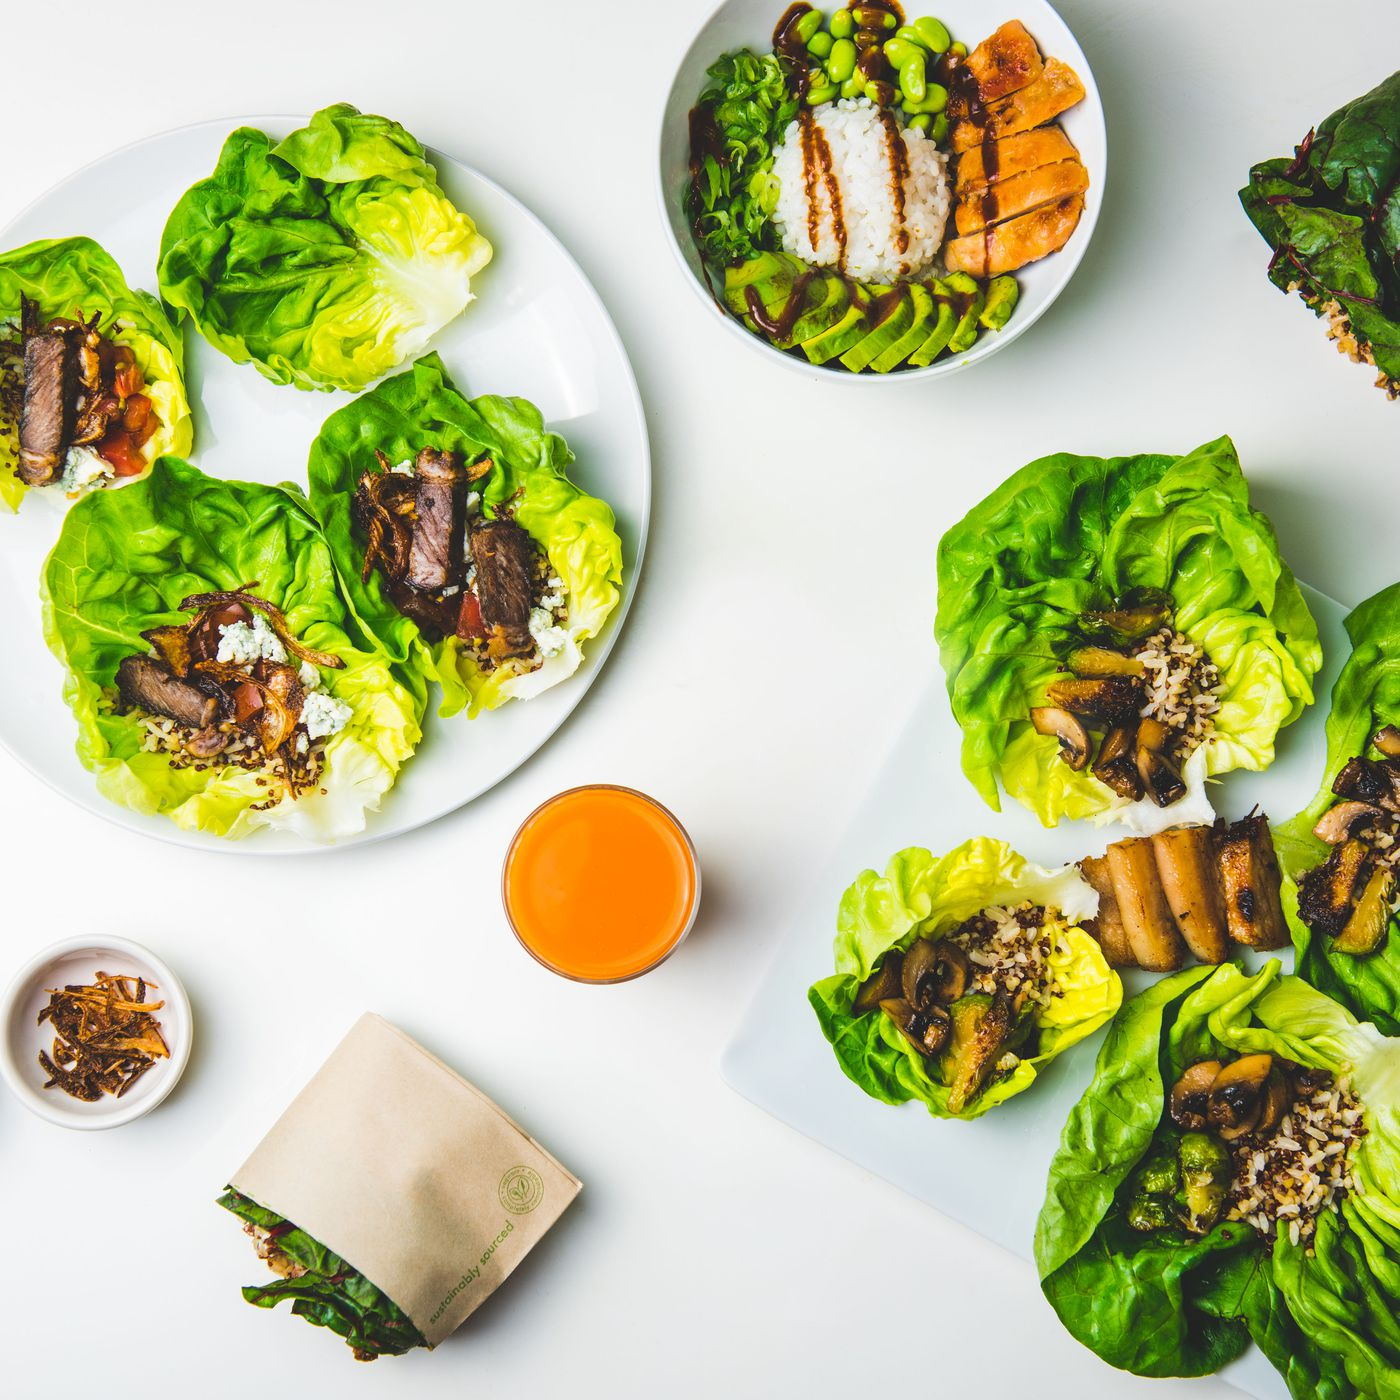 New Fast-Casual Restaurant Wants to Make Eating Lettuce \'A Lifestyle ...